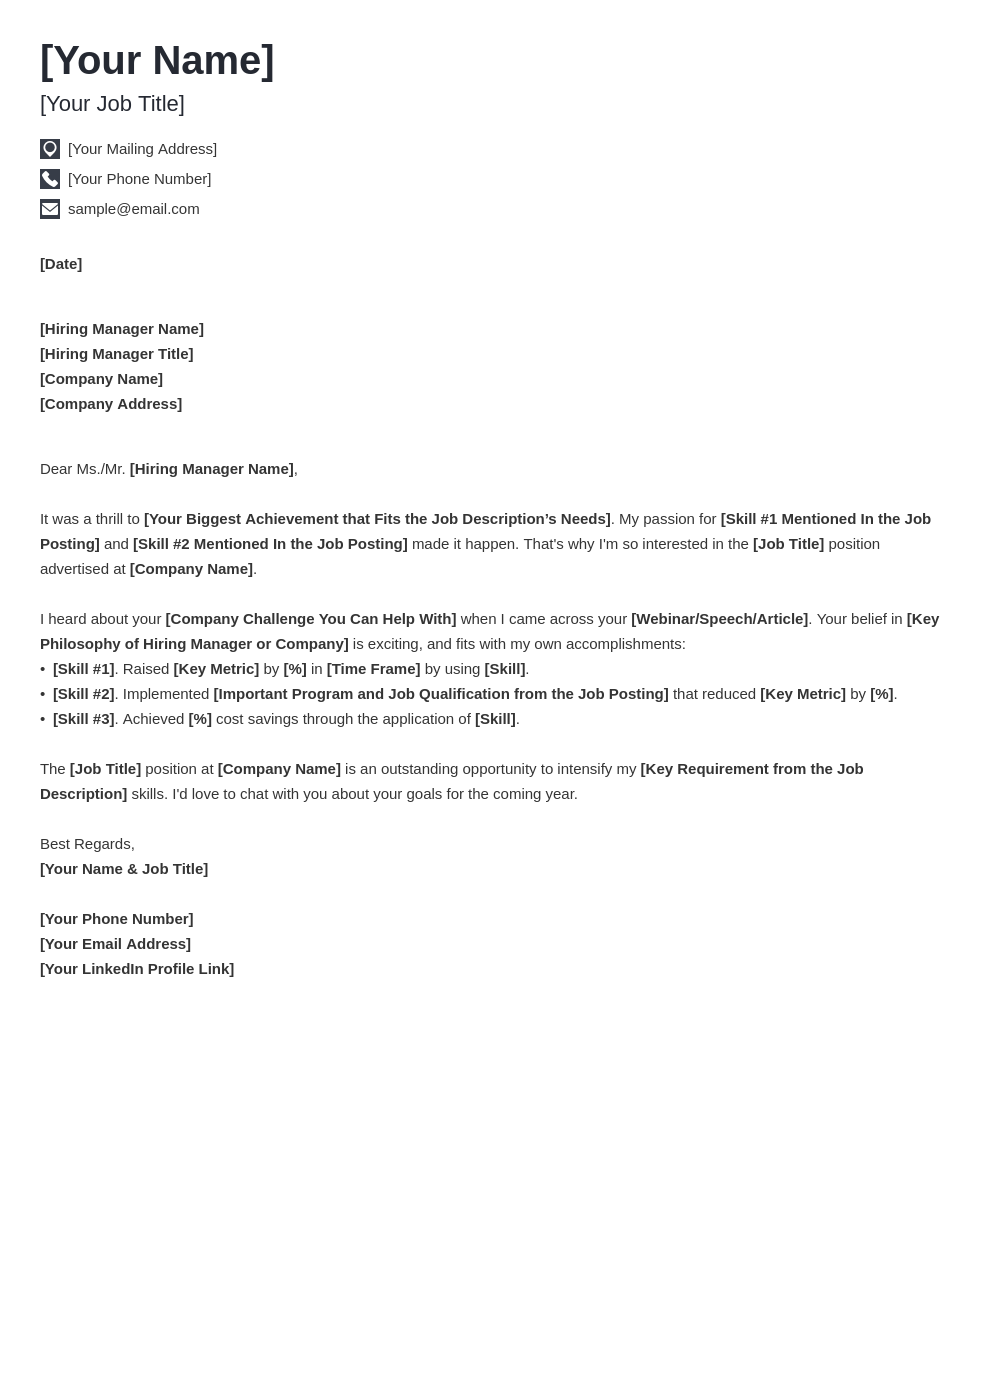 cover letter generic template iconic uk